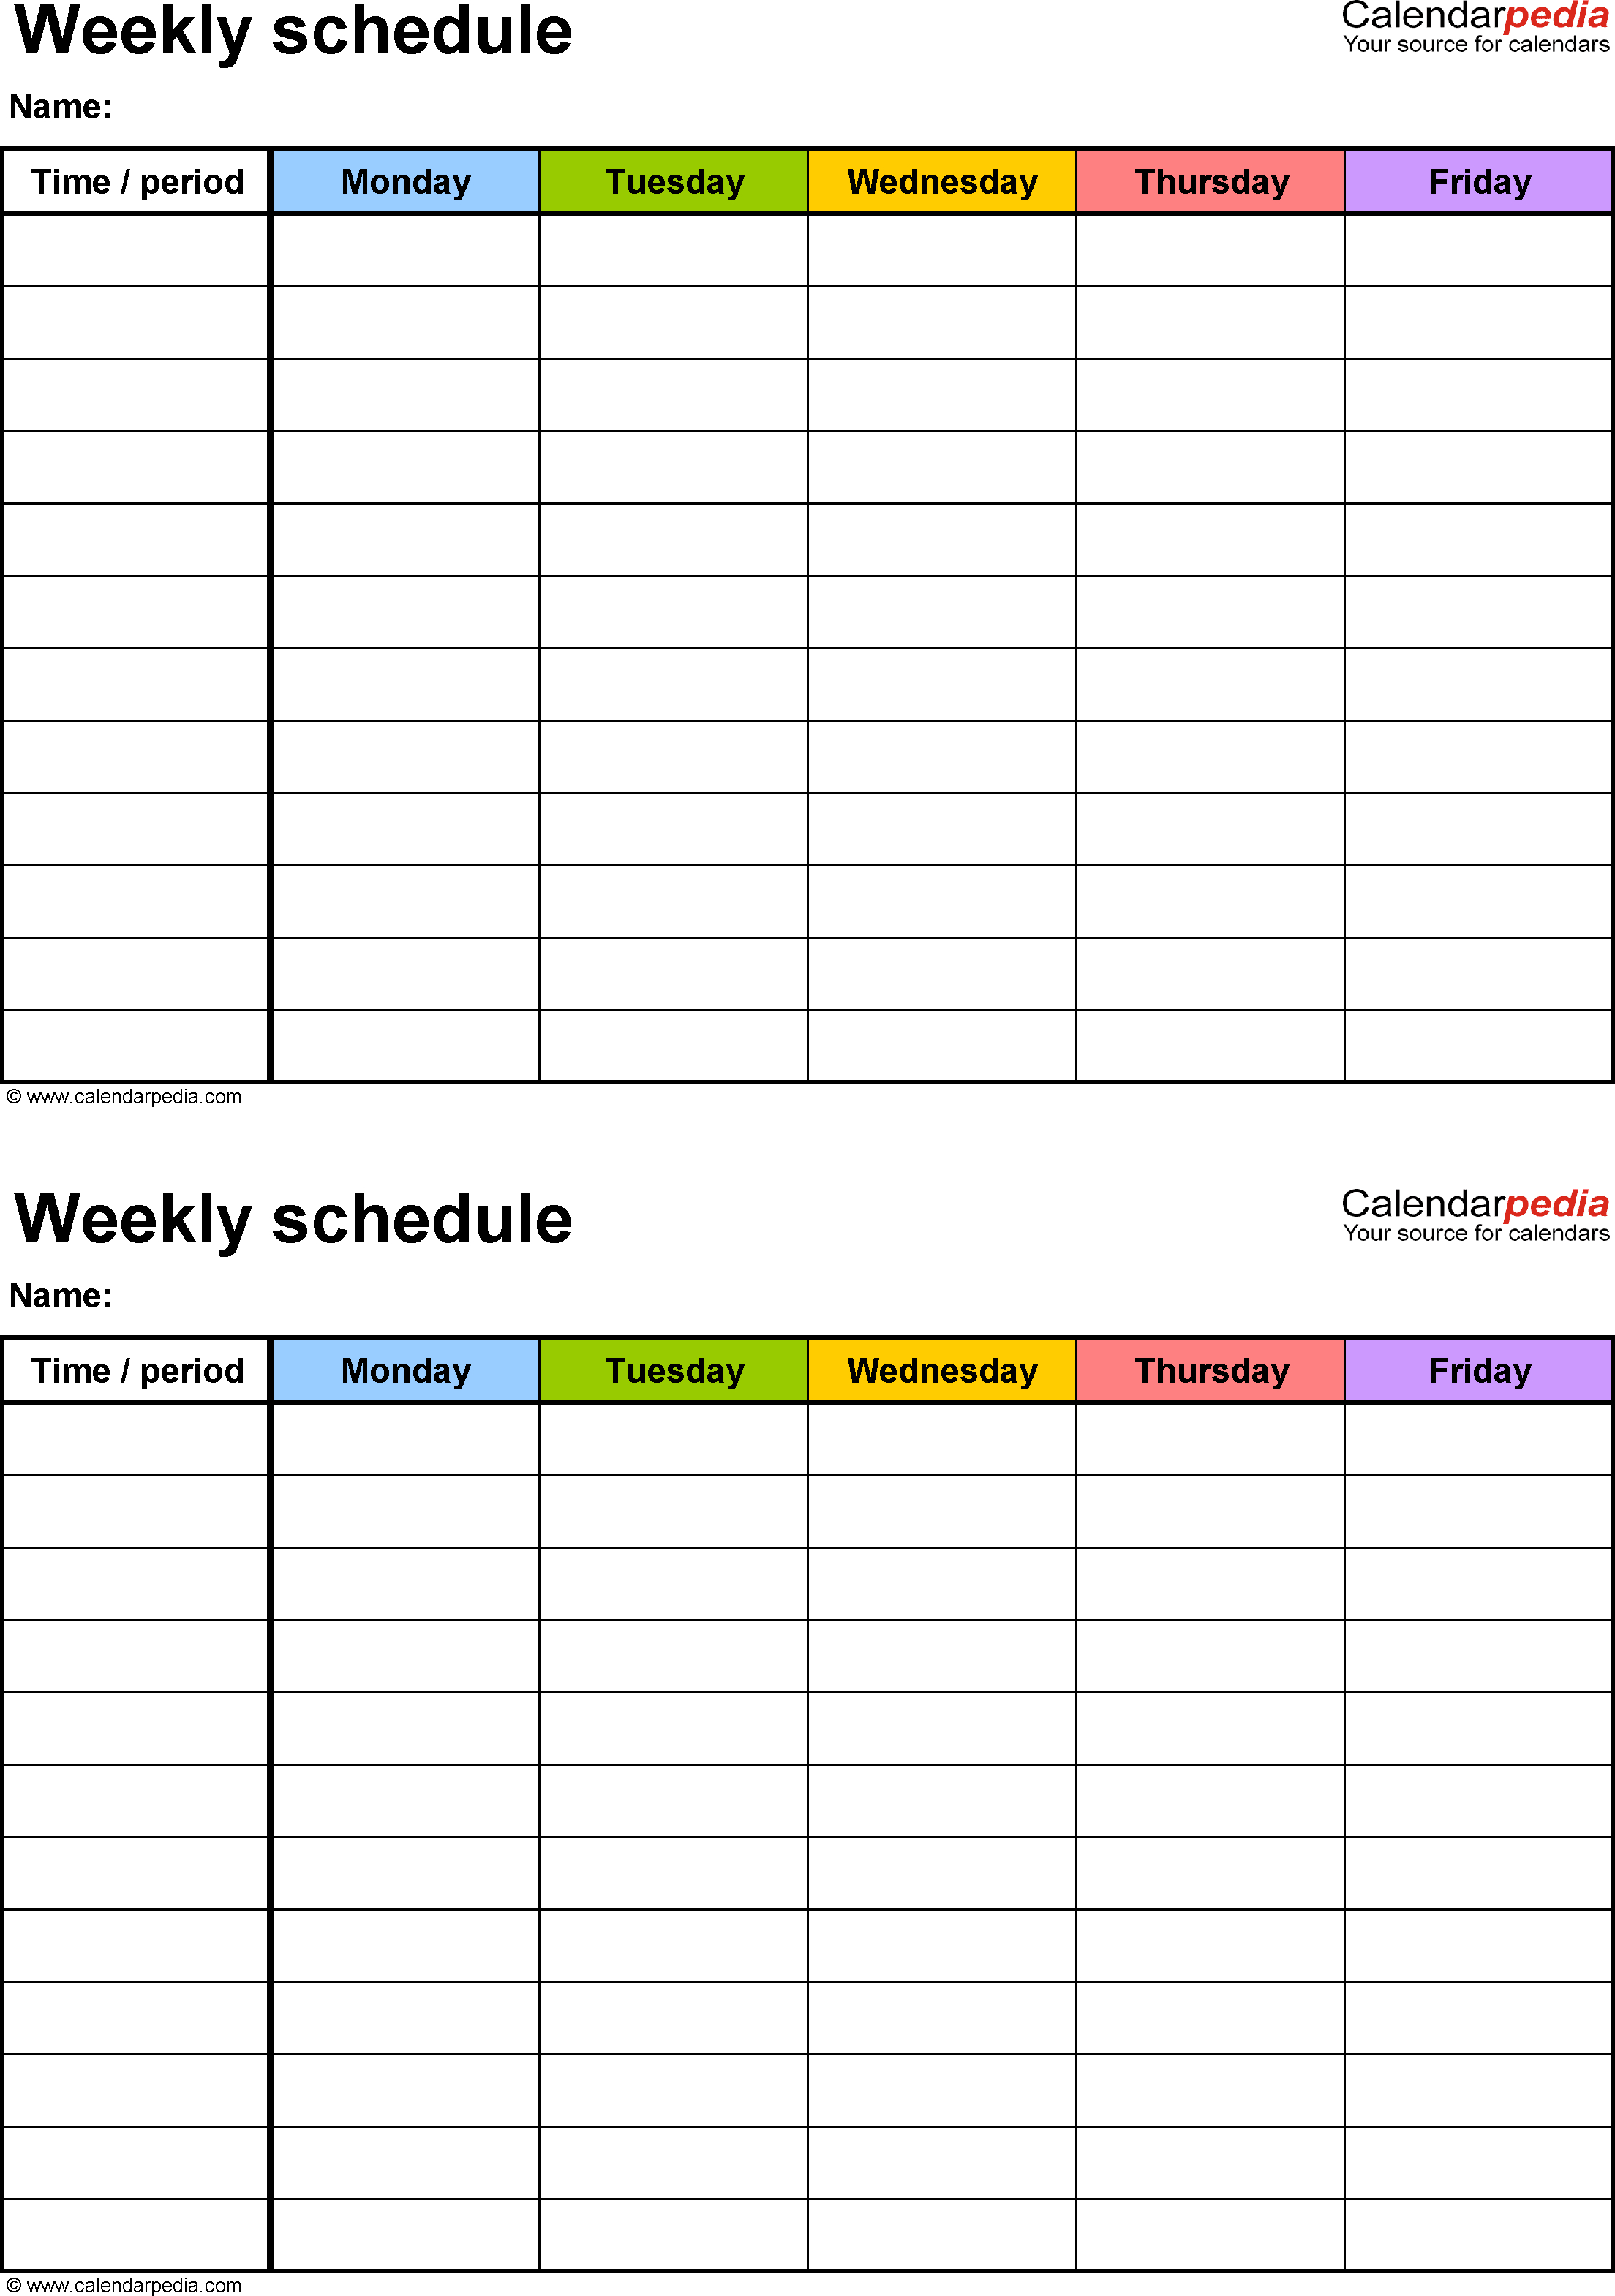 Free Weekly Schedule Templates For Word - 18 Templates pertaining to Empty Calendar Template For Kids